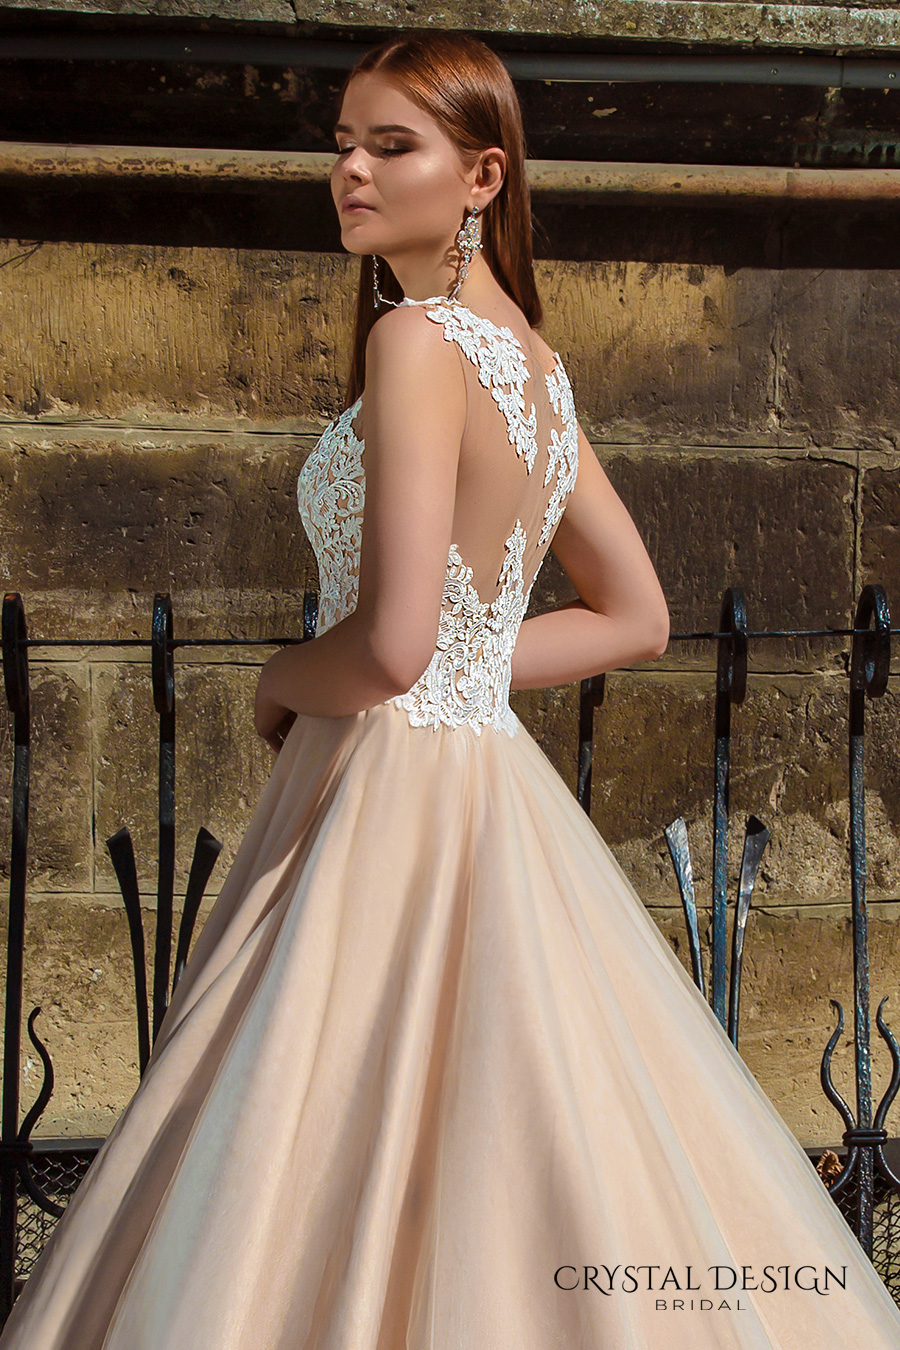 crystal design bridal 2016 sleeveless embellished semi sweetheart neckline lace bodice champagne color princess a  line ball gown wedding dress illusion back royal train (ariel) zsdv